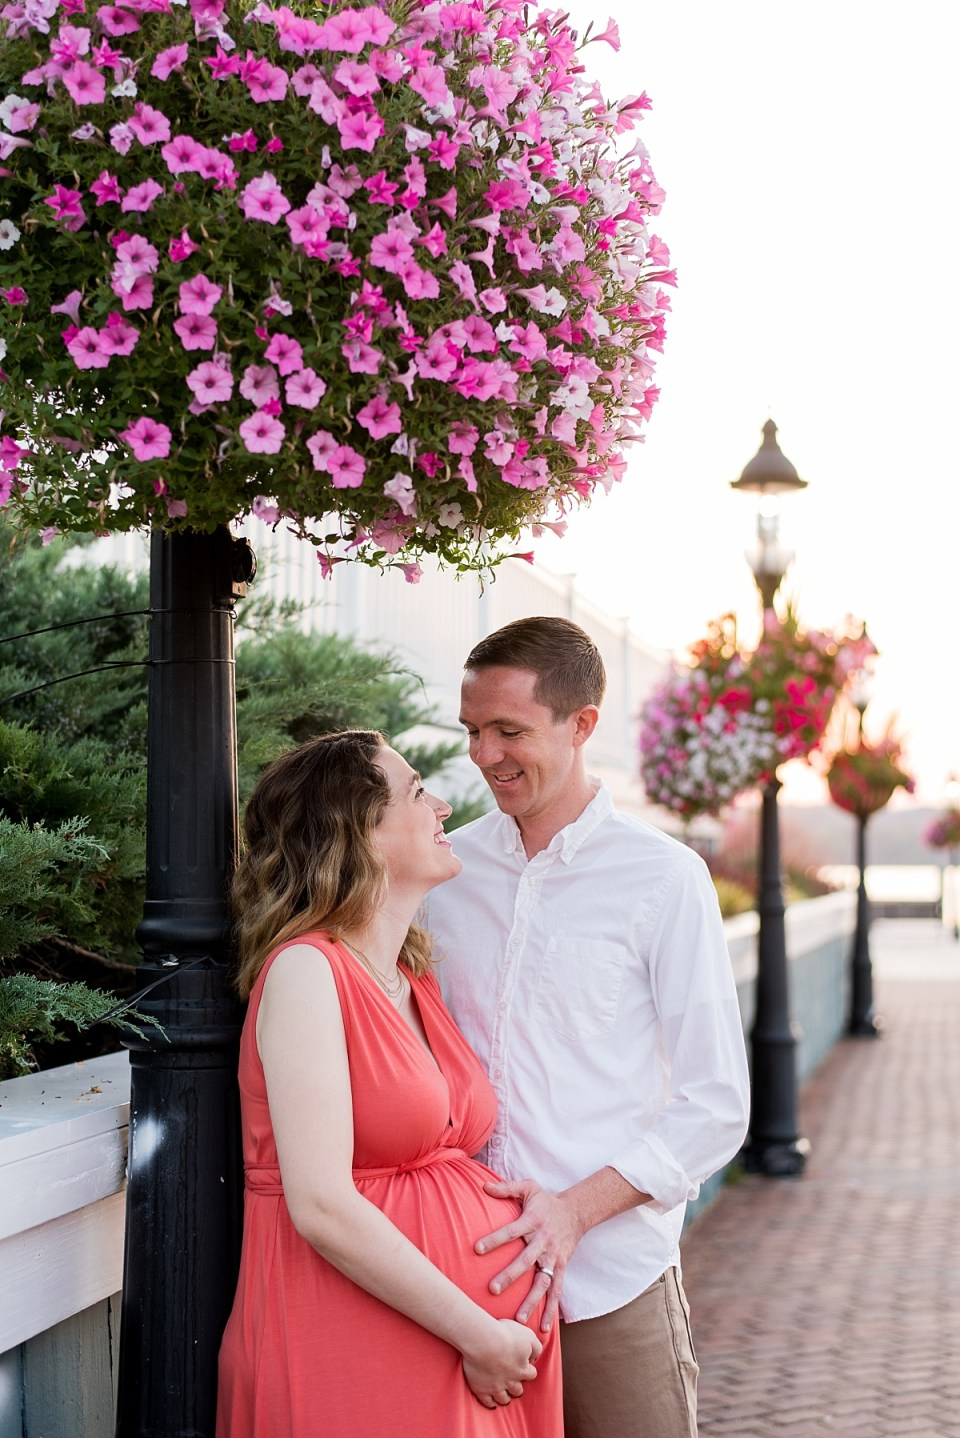 Old Town Alexandria Waterfront Maternity Session by Alexandria Maternity Photographer, Erin Tetterton Photography